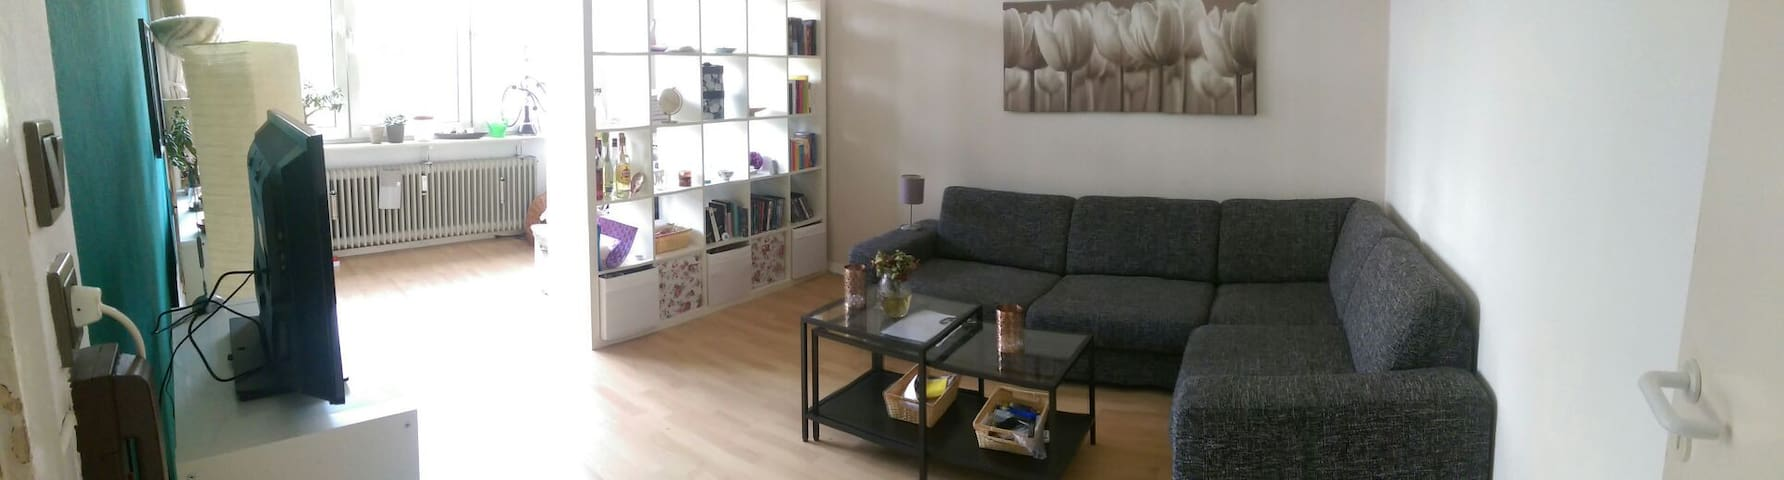 Apartment near Central Station - Bremen - Huoneisto